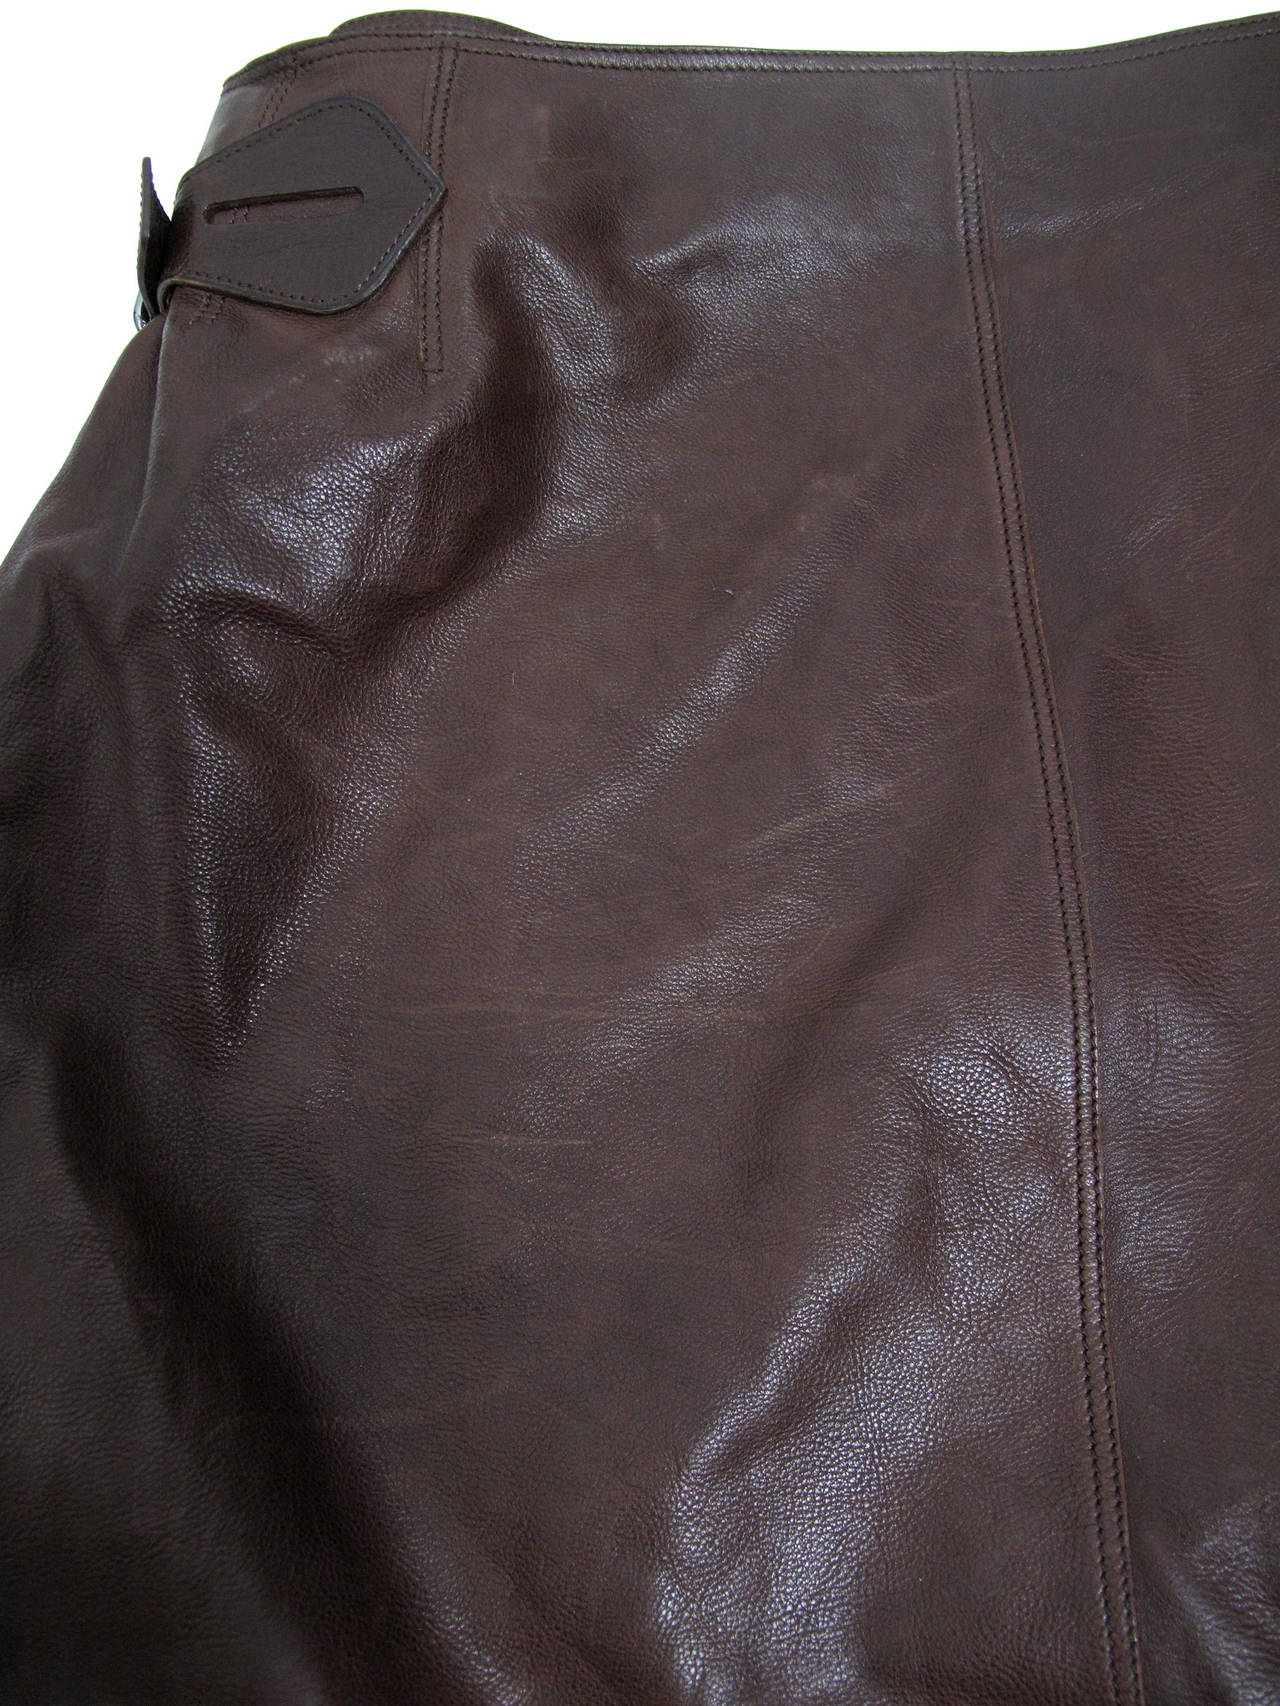 Hermes Rich Dark Brown Leather Wrap Skirt with Buckle 6